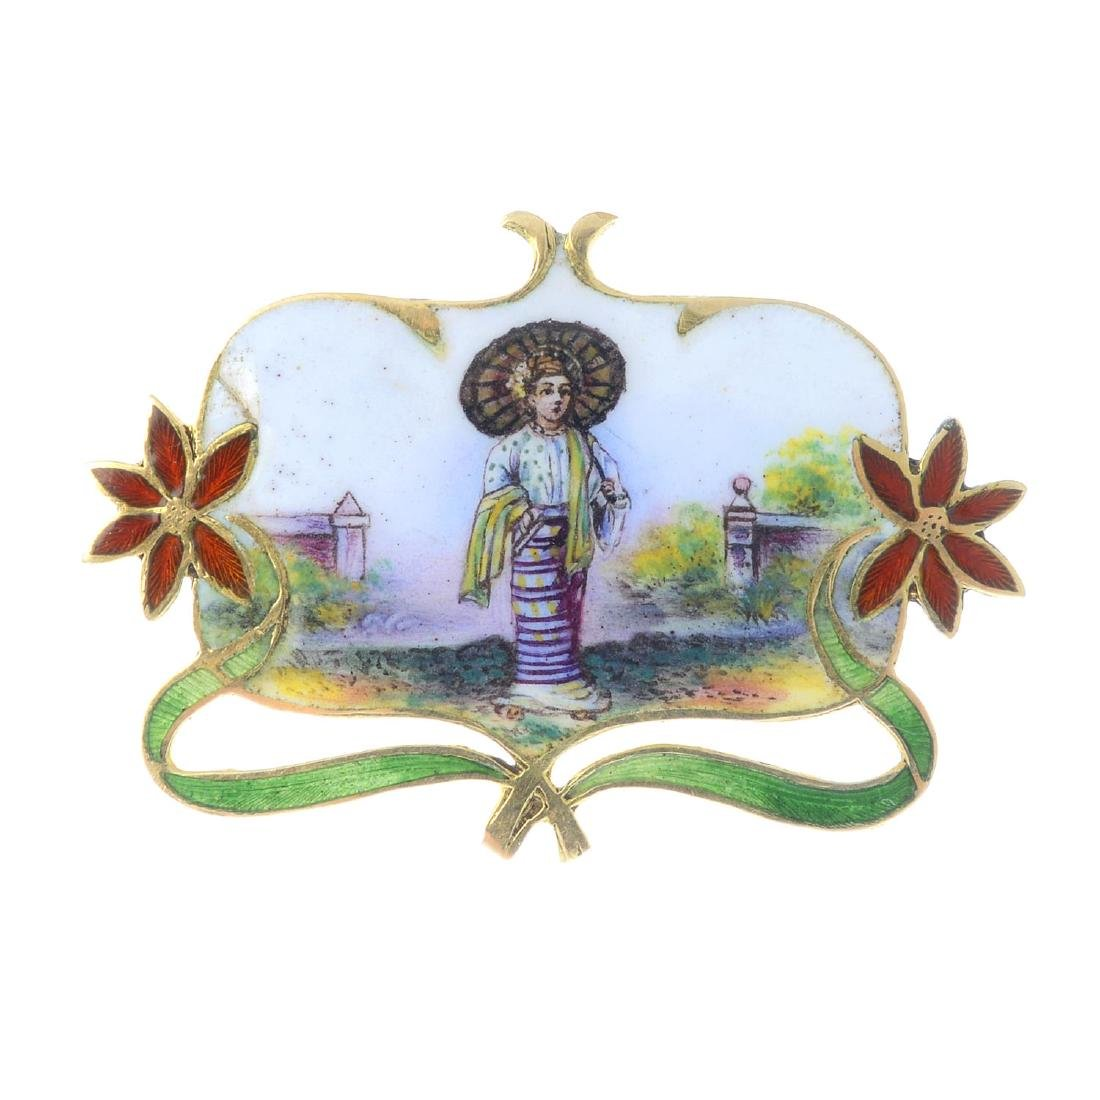 An early 20th century gold enamel brooch. The